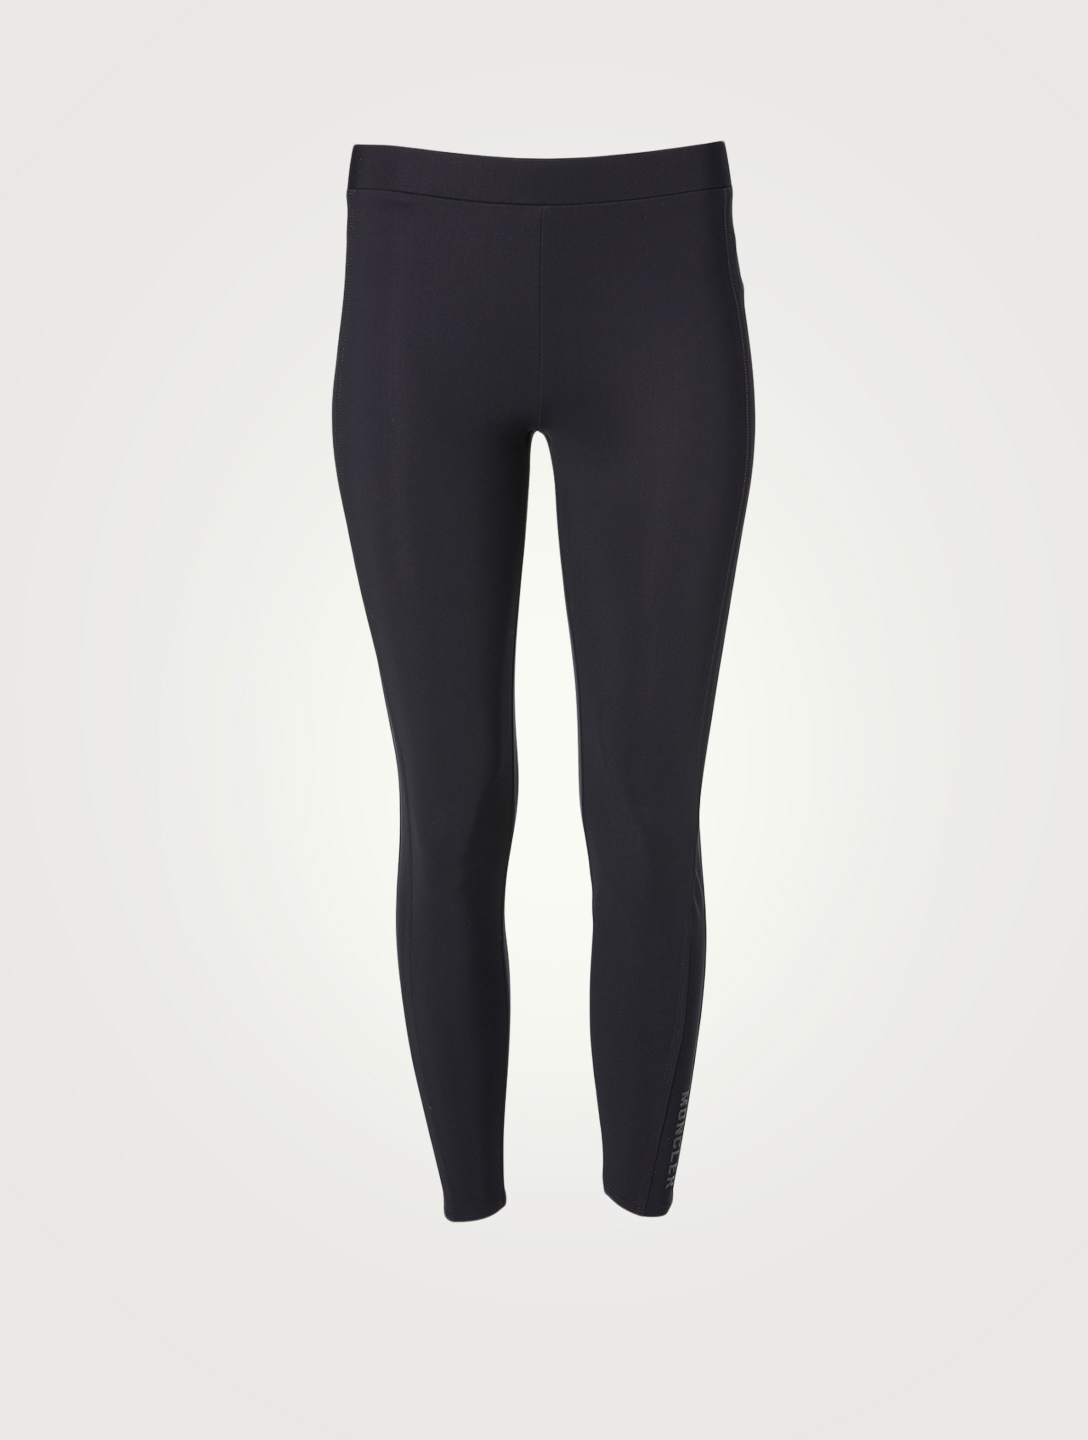 MONCLER Stretch Logo Leggings Women's Black